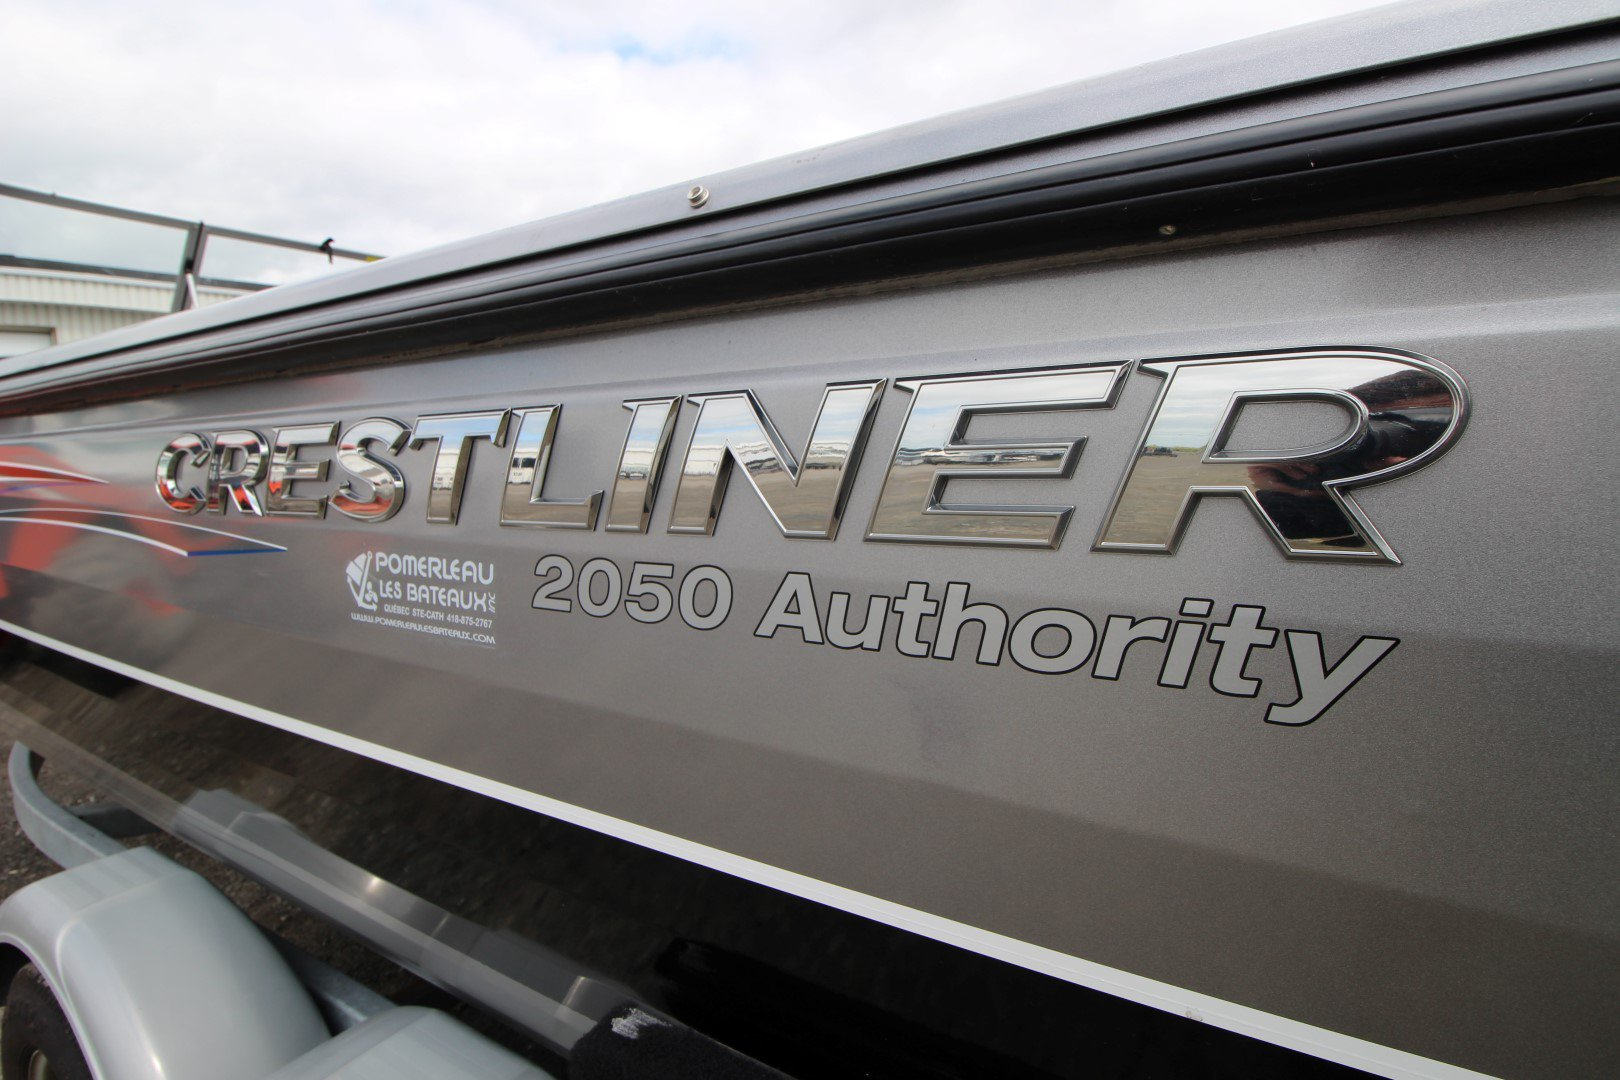 Crestliner Authority 2050 - IMG_1784